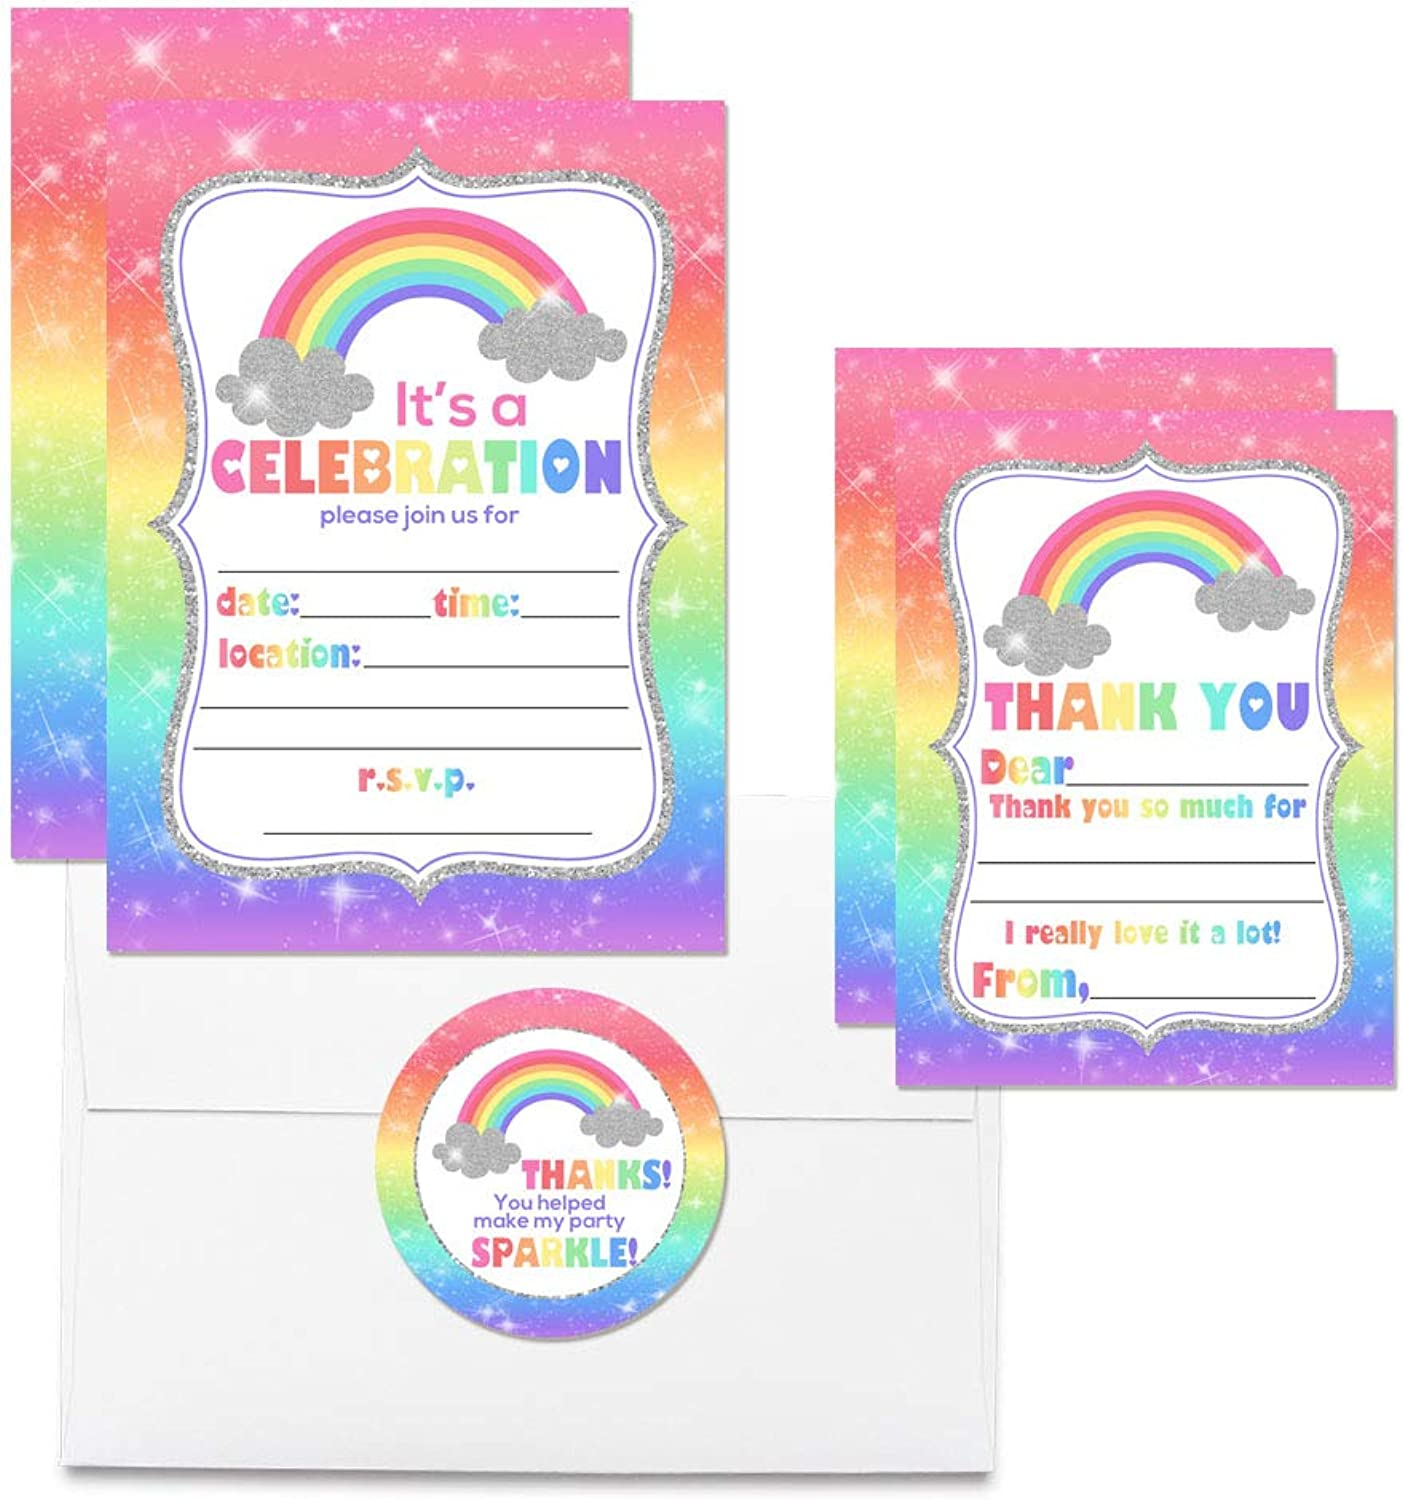 Deluxe Rainbow Sparkle Birthday Party Bundle for Girls, Includes 20 Each of 5 x7  Fill-in Invitation Cards, Thank You Cards, Thank You Party Favor Stickers and Envelopes